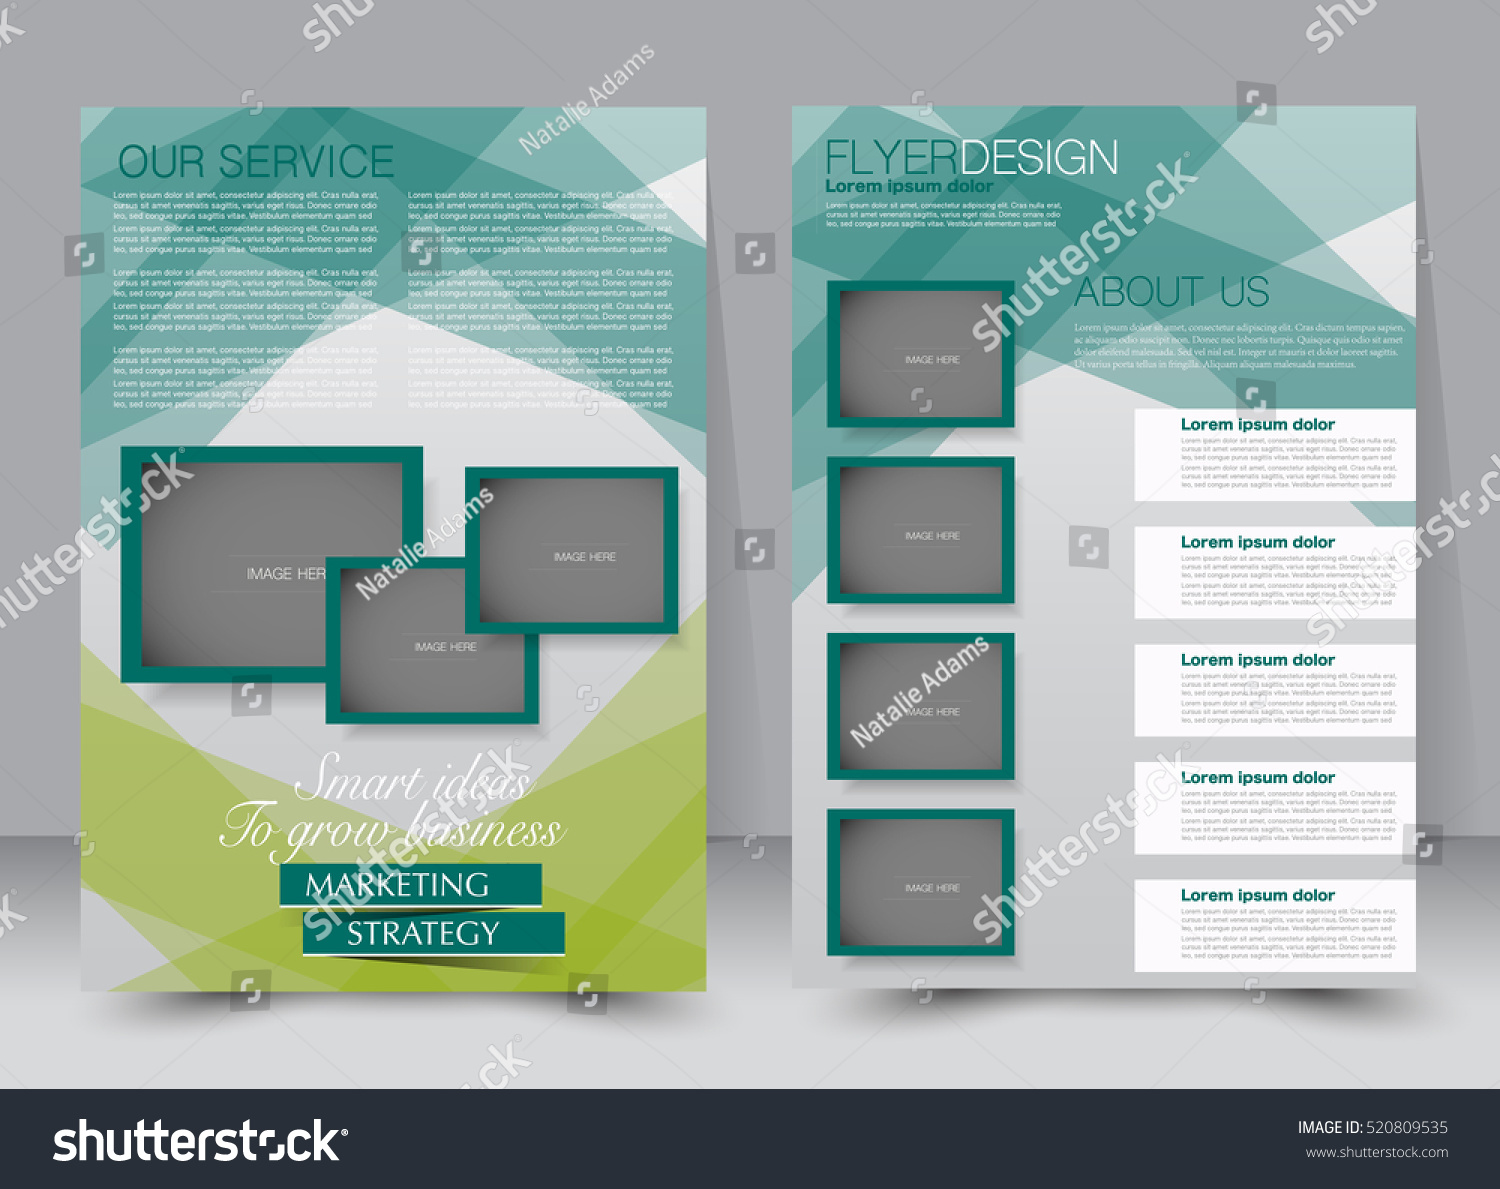 brochure template business flyer annual report stock vector 520809535 shutterstock. Black Bedroom Furniture Sets. Home Design Ideas